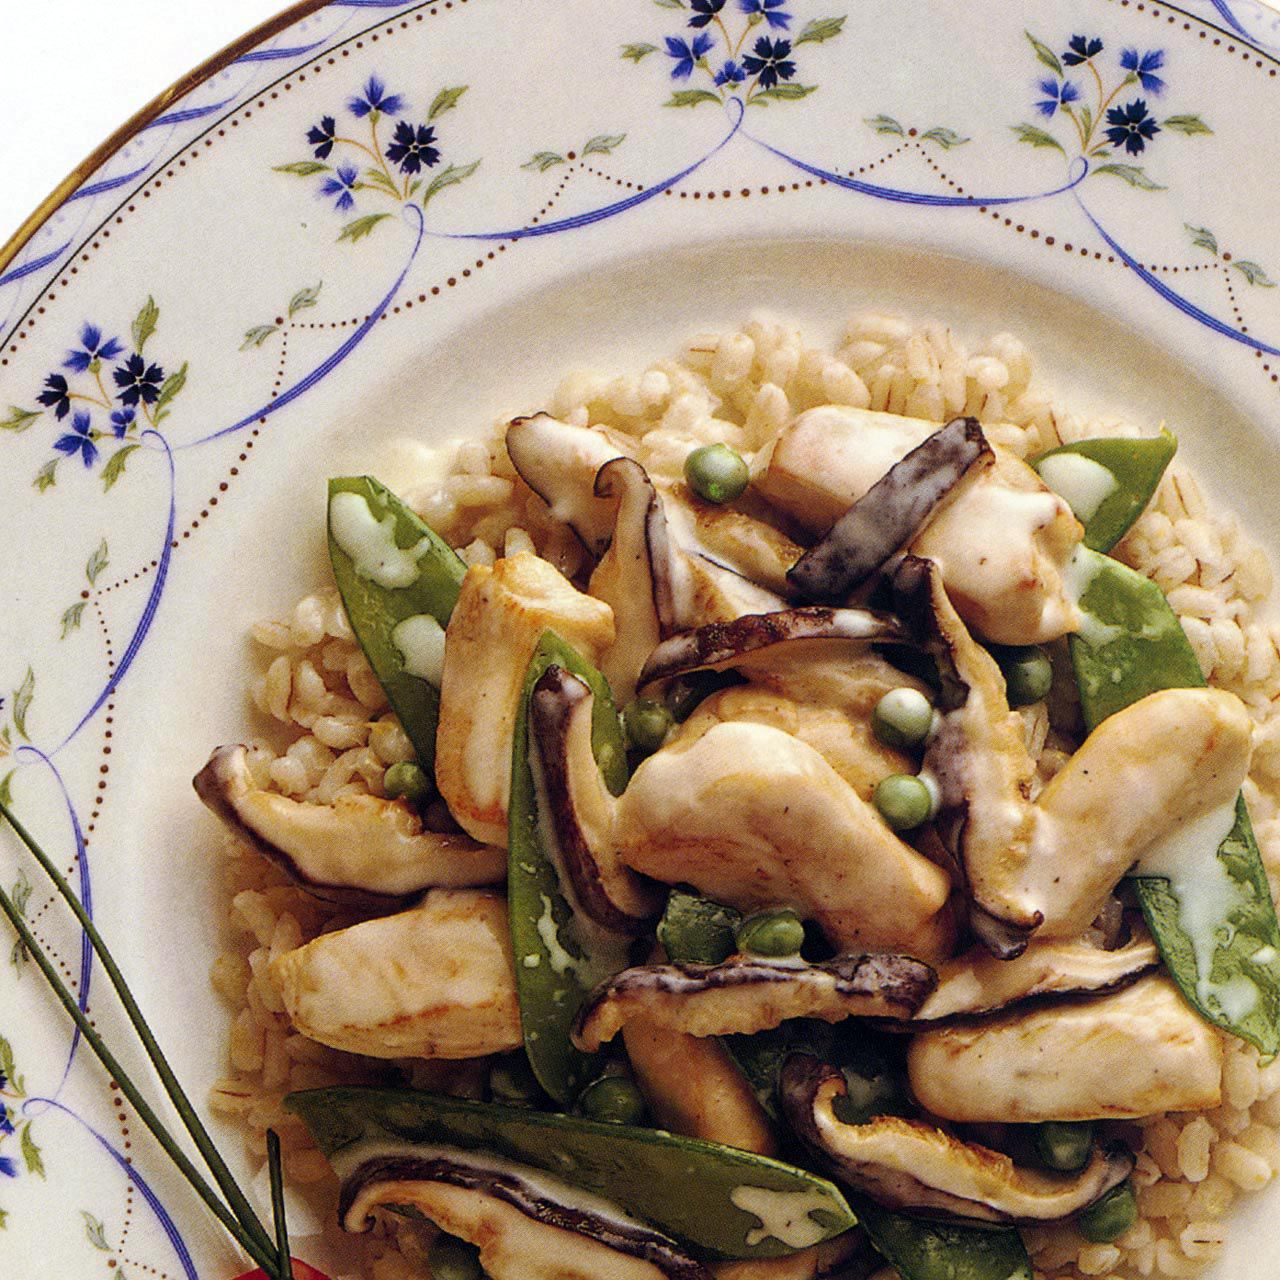 Ginger Chicken with Peas and Shiitakes